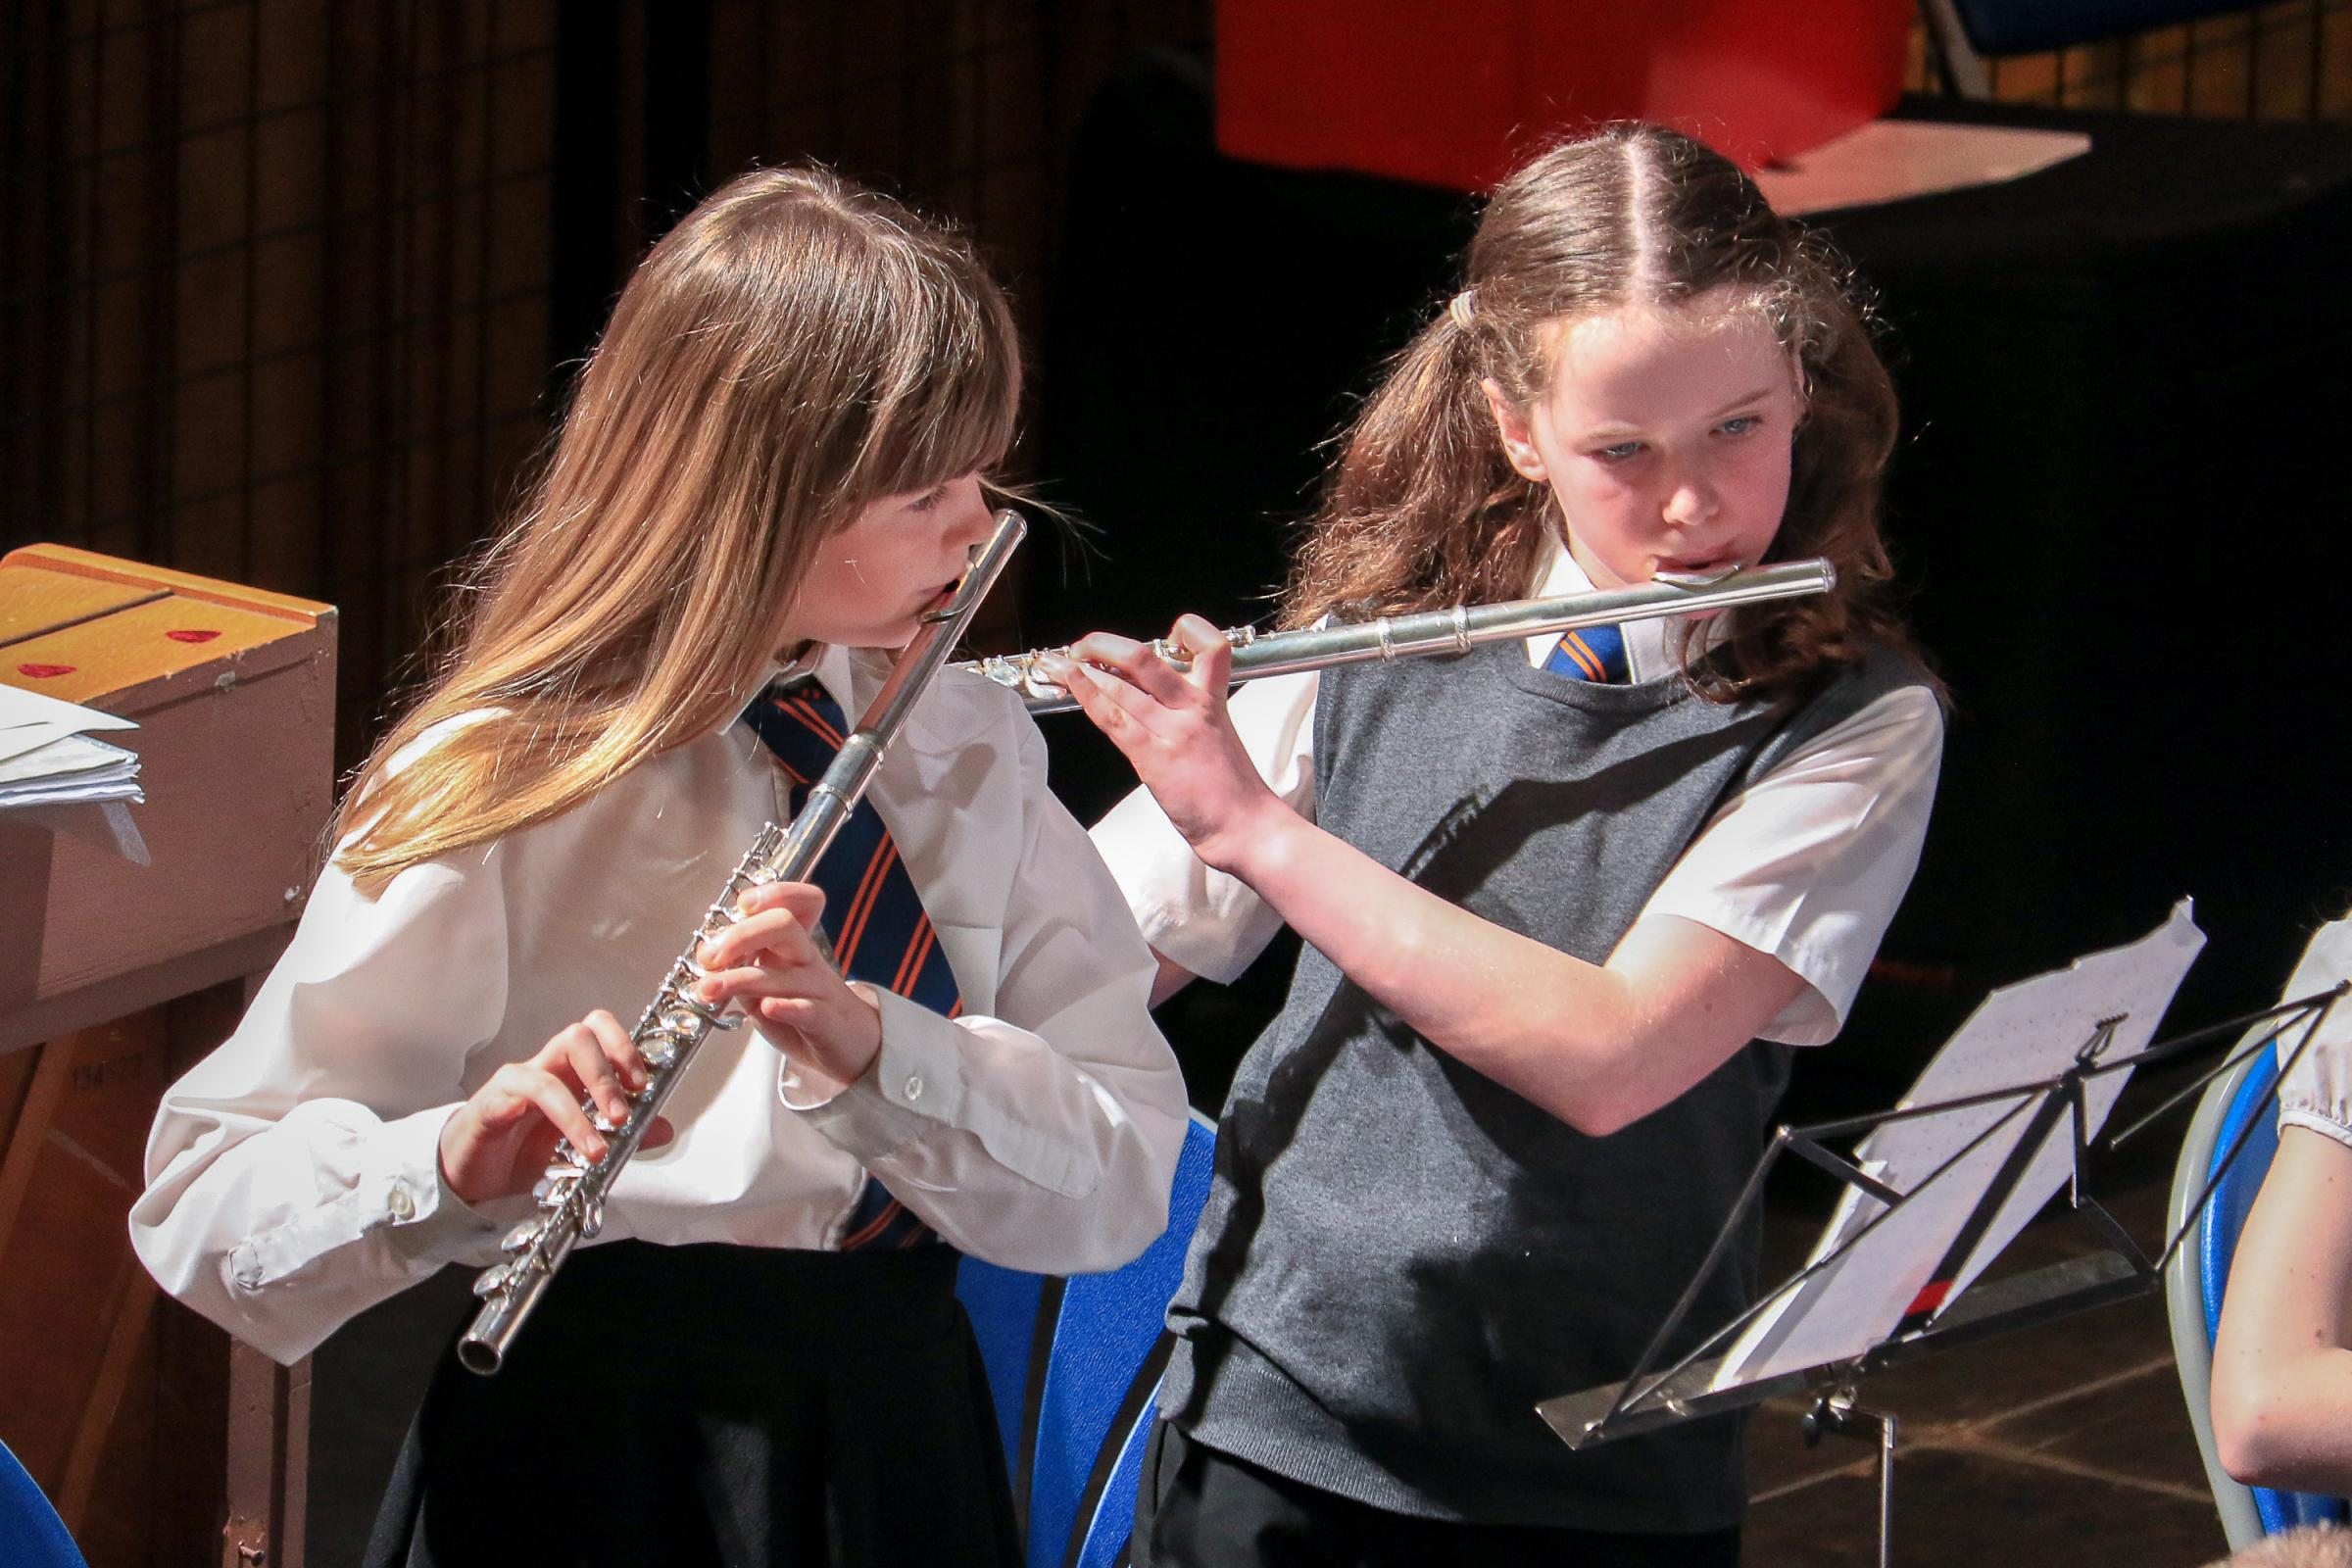 Petition fights new music lesson fees in South Ayrshire